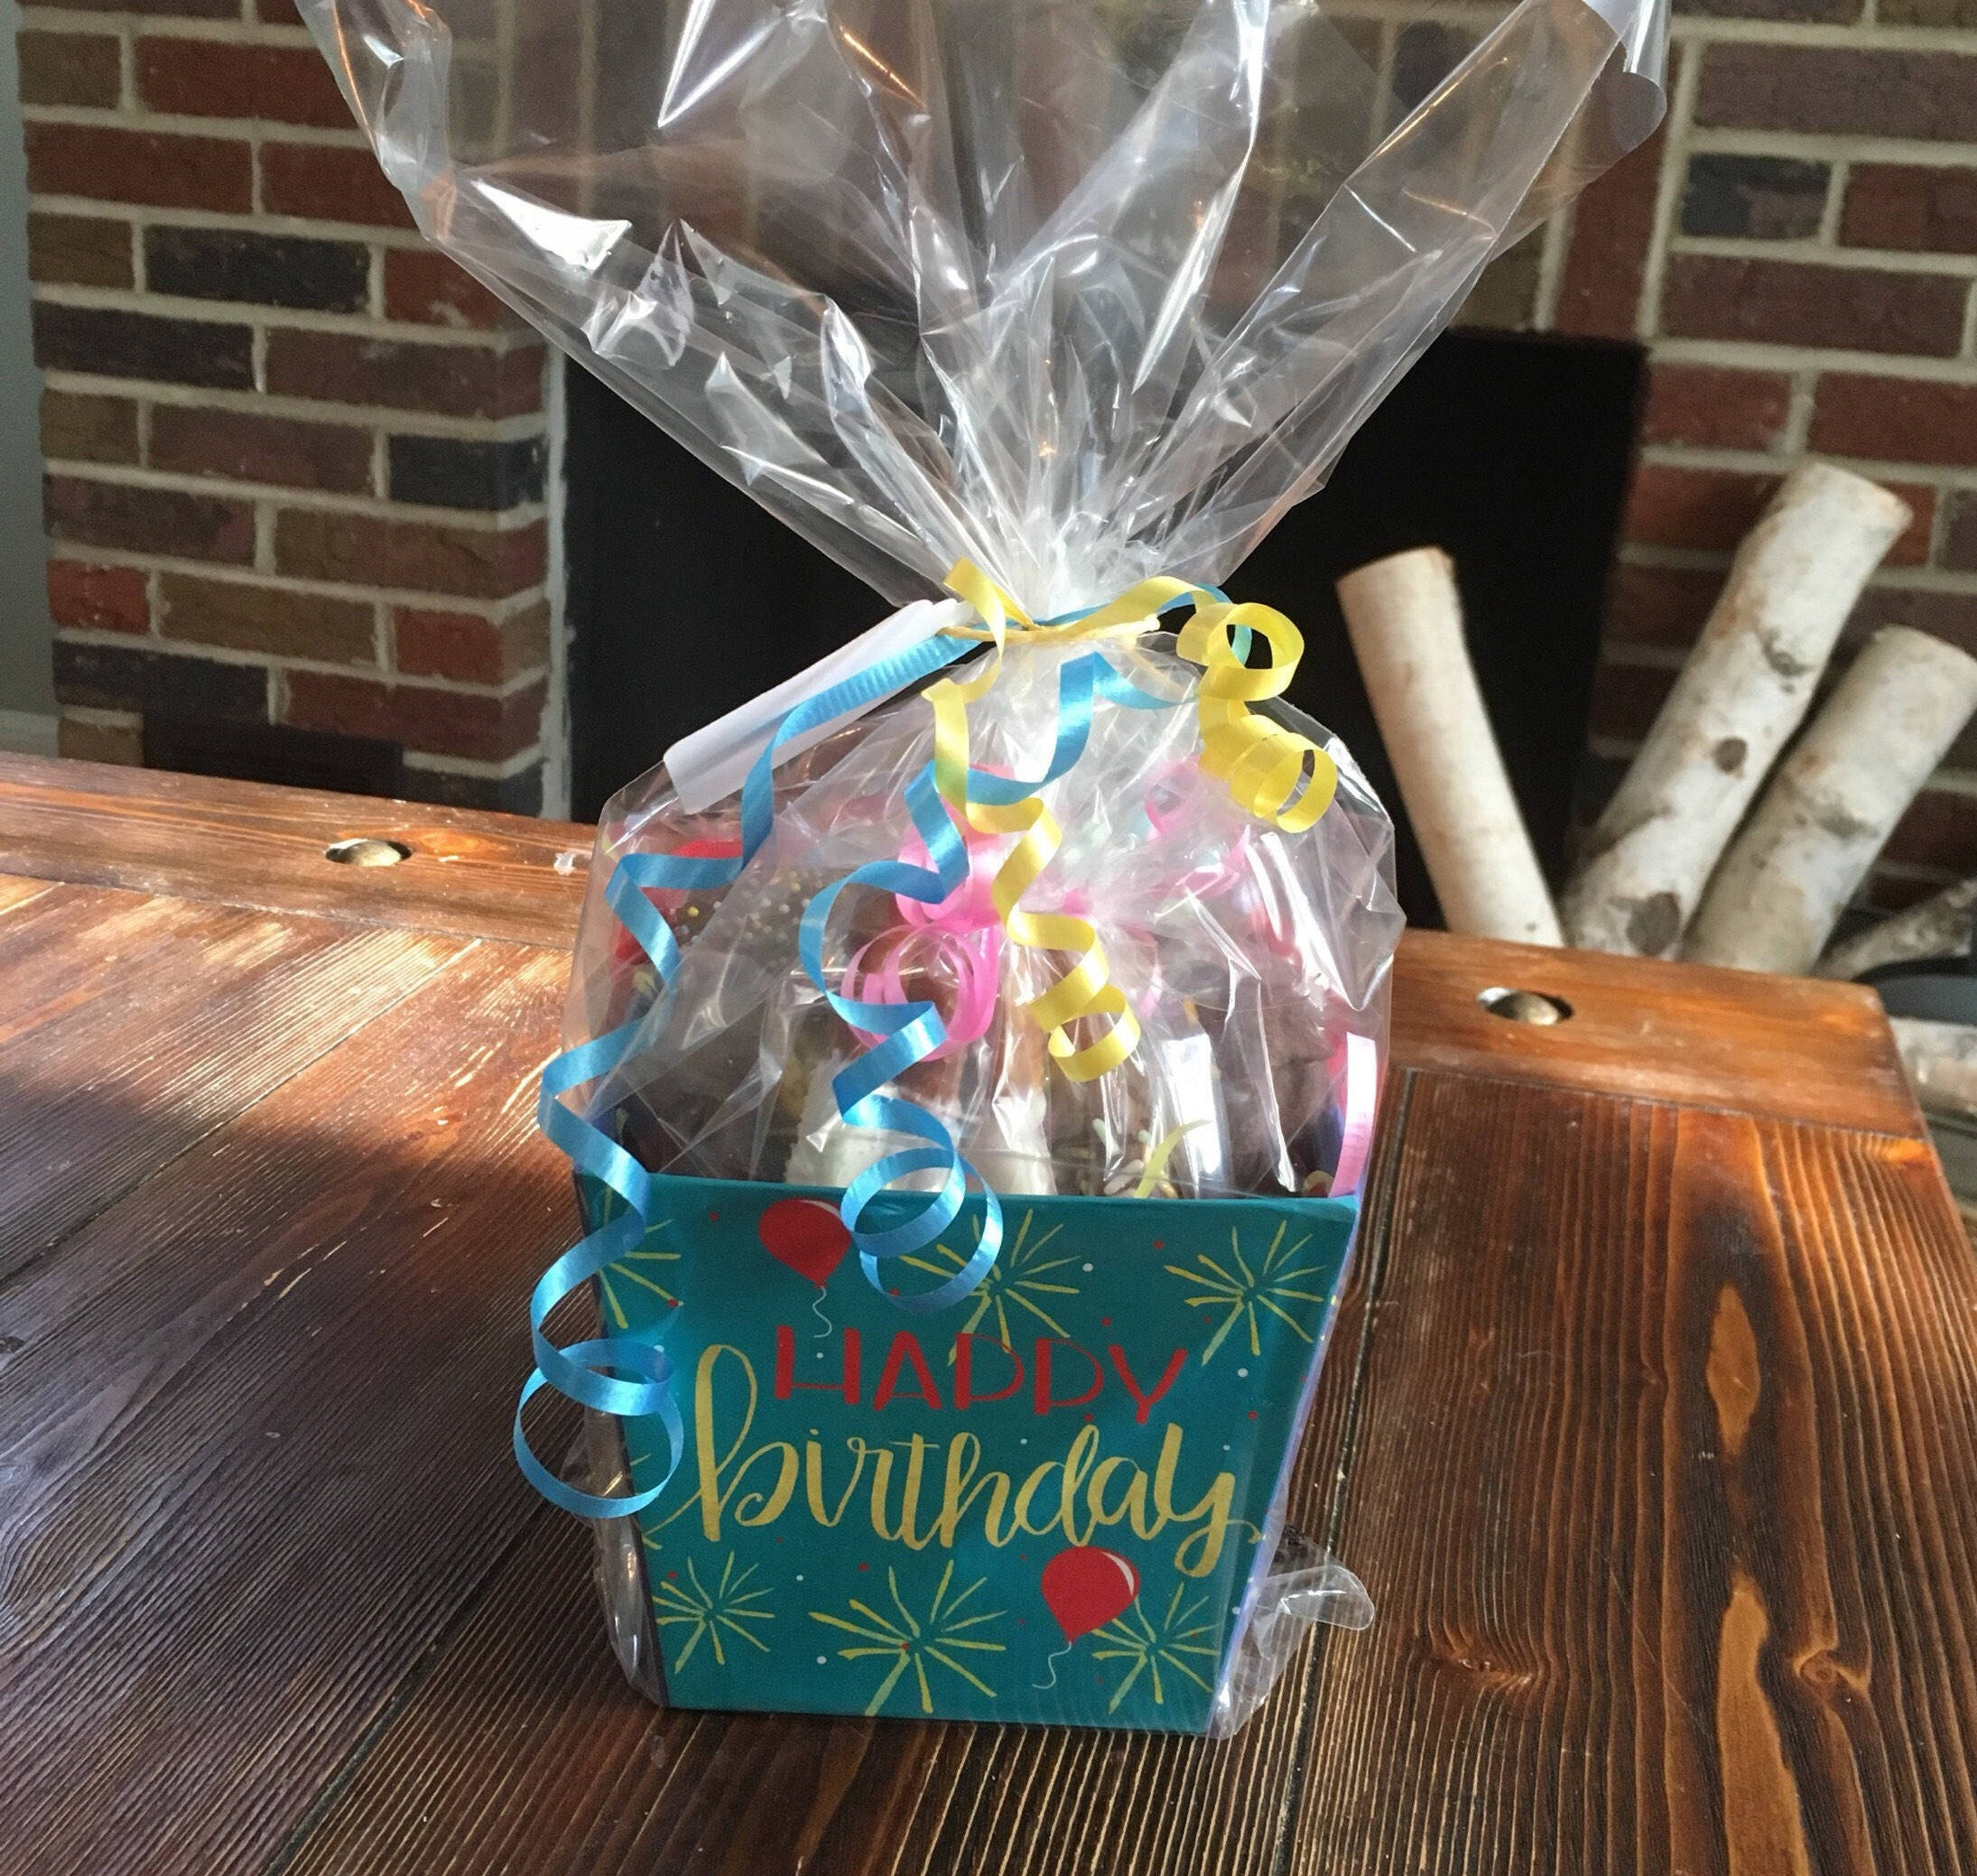 50th Birthday Gift Baskets For Him Lovely 30th Bday Ideas